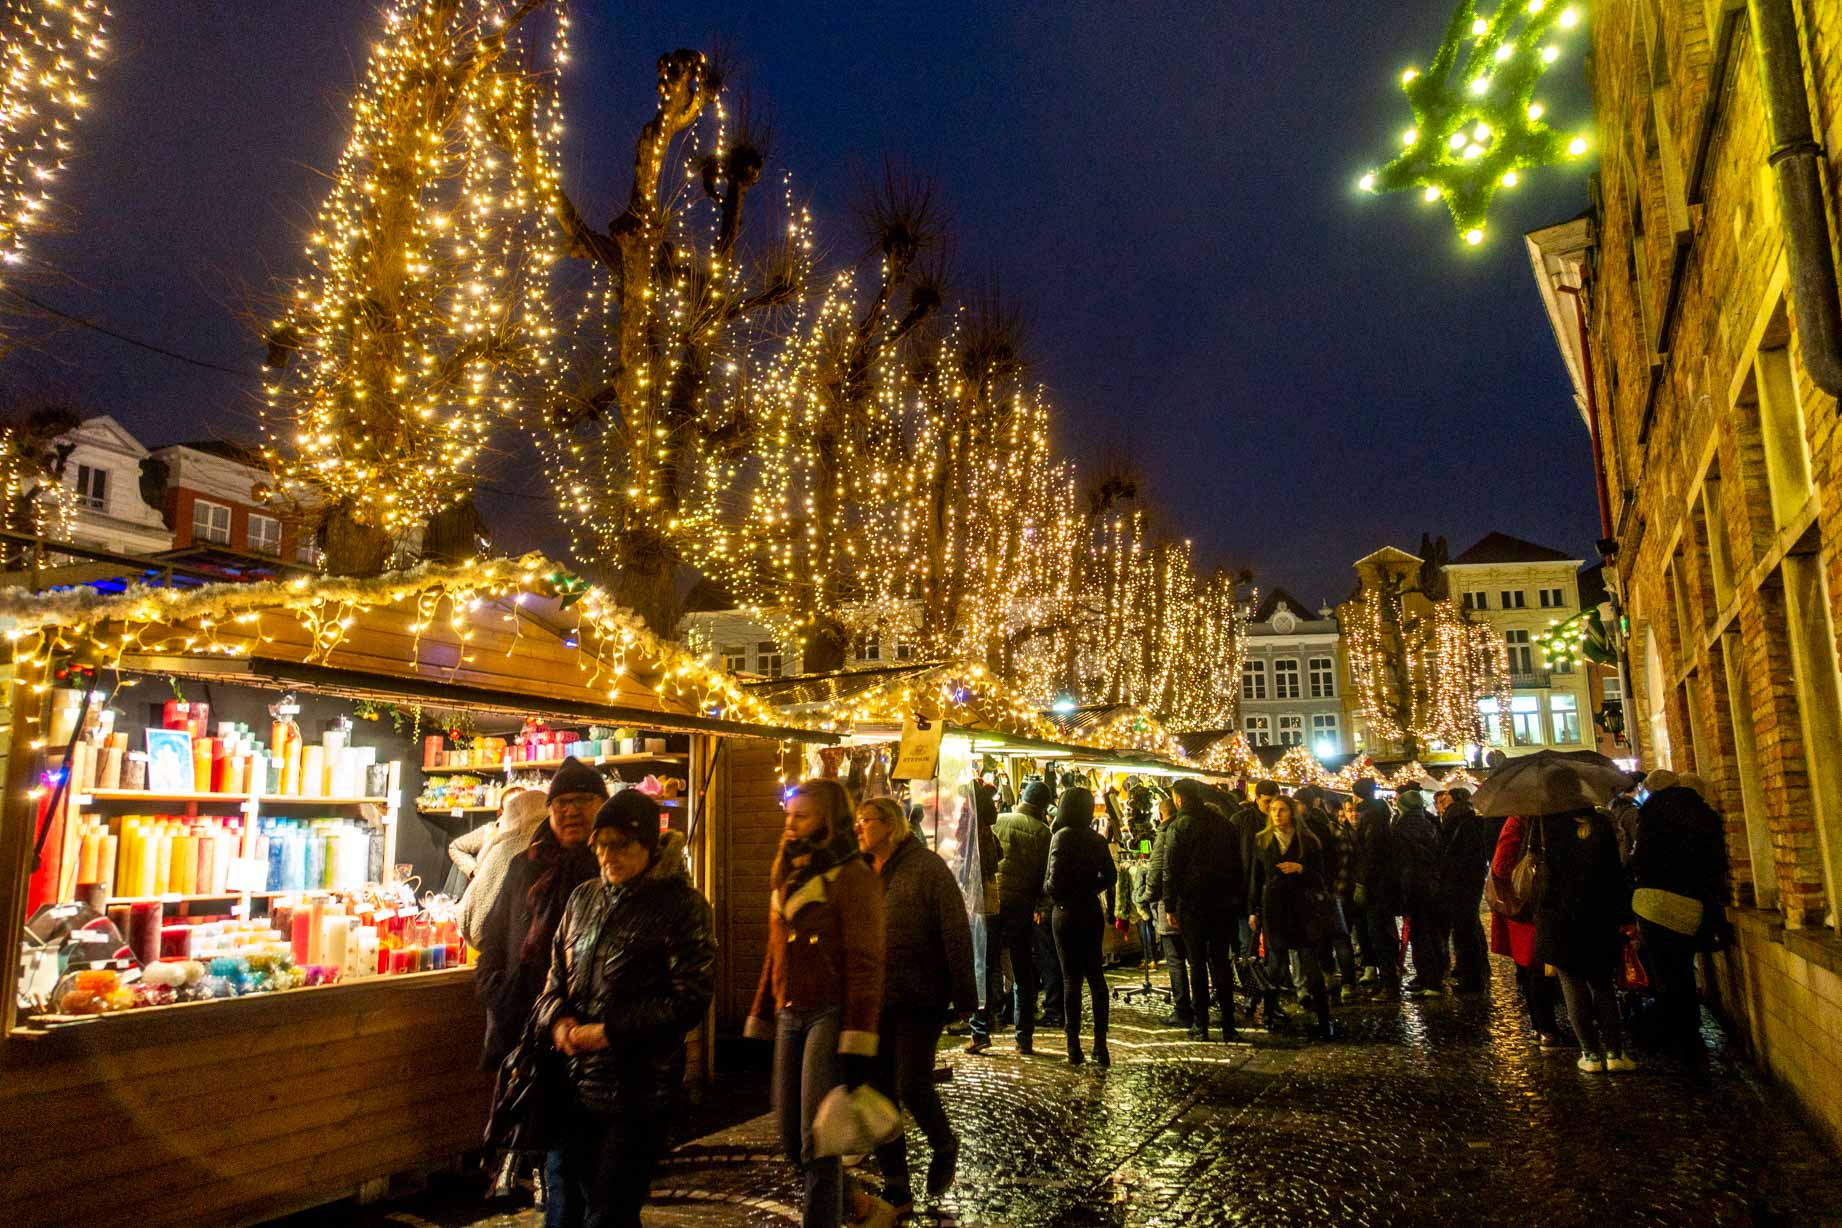 Shoppers at the market stalls decorated with Christmas lights